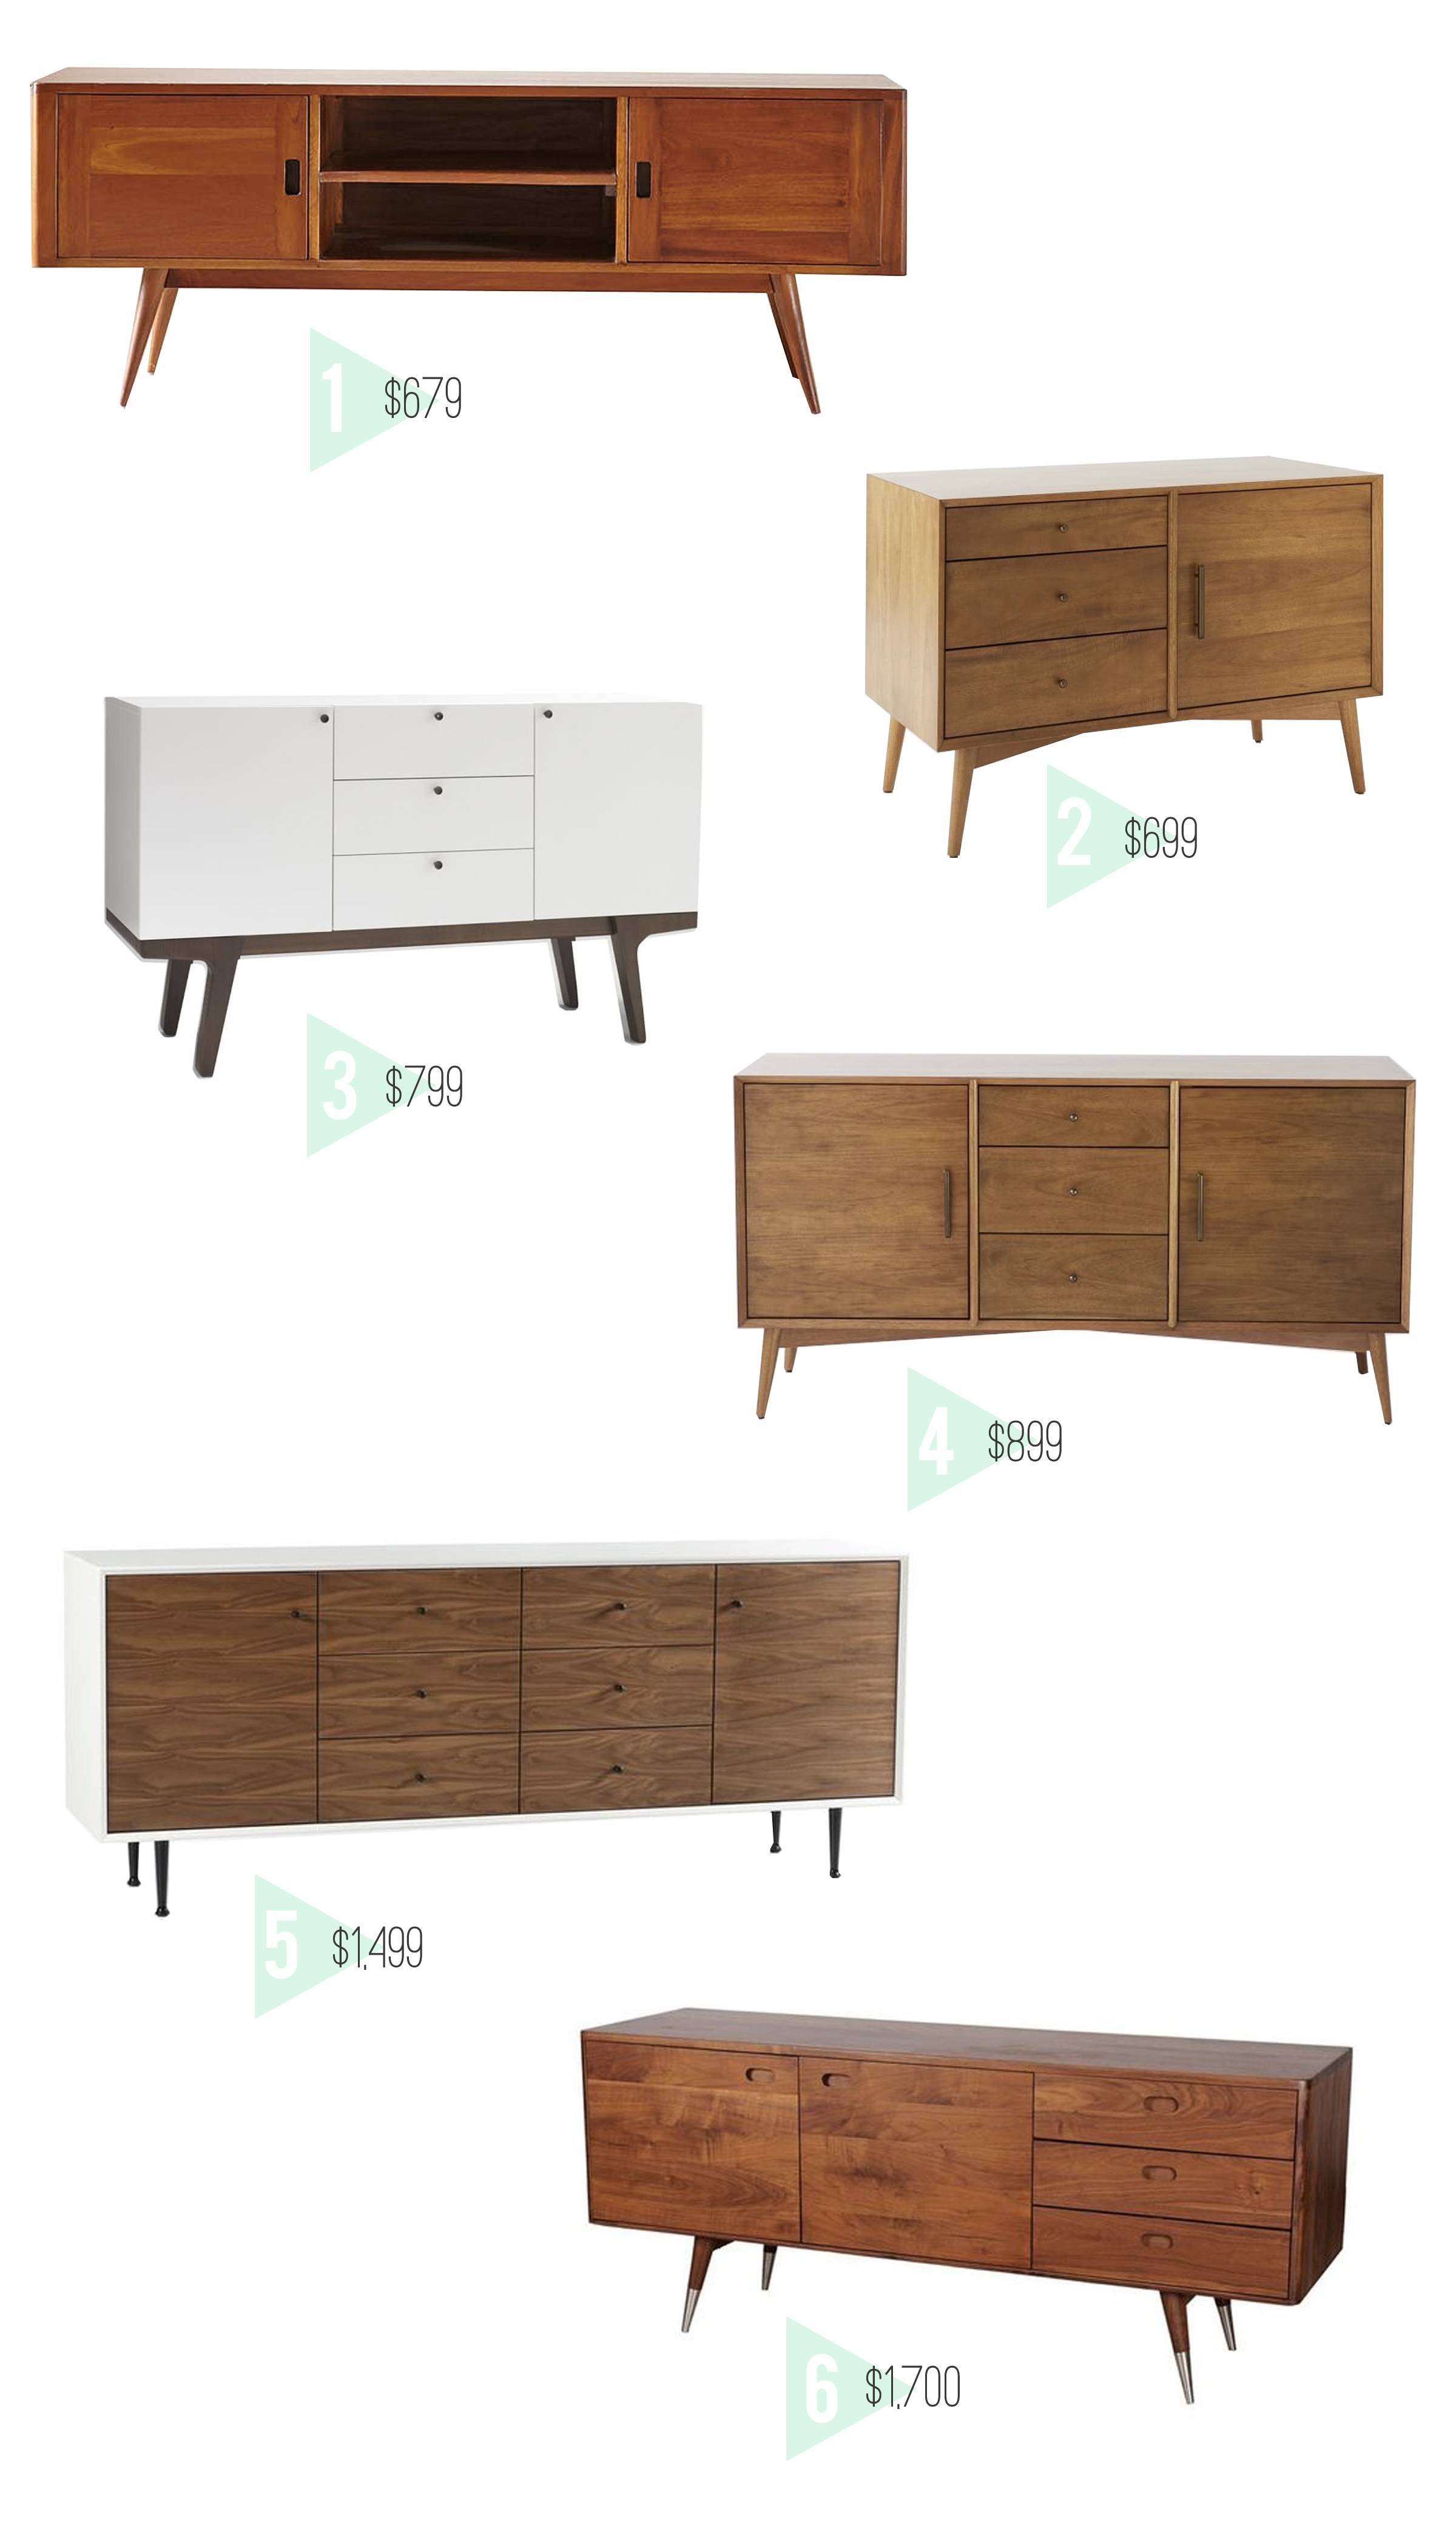 Design Evolving - In Search Of The Perfect Credenza - Design Evolving inside West Elm Sideboards (Image 4 of 15)